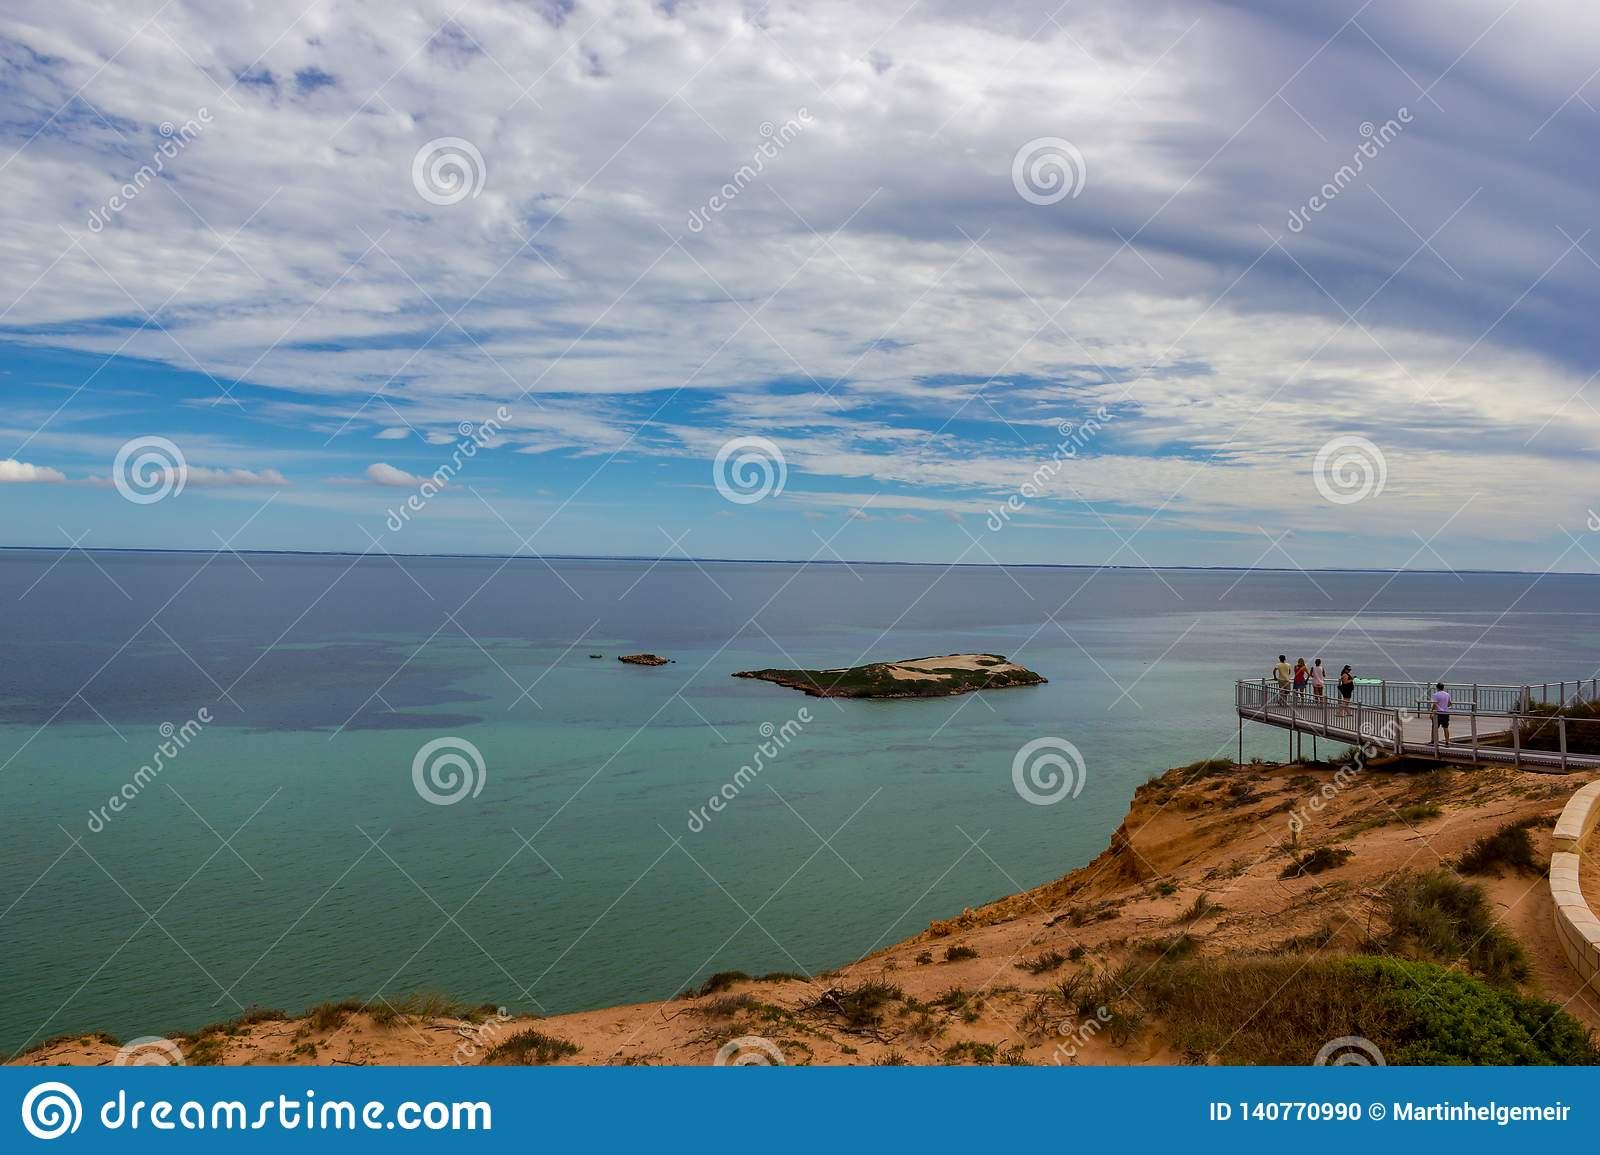 A Group of tourists at a Lookout platform in Monkey Mia, Western Australia. Caucasian girl enjoying cliffs of Indian